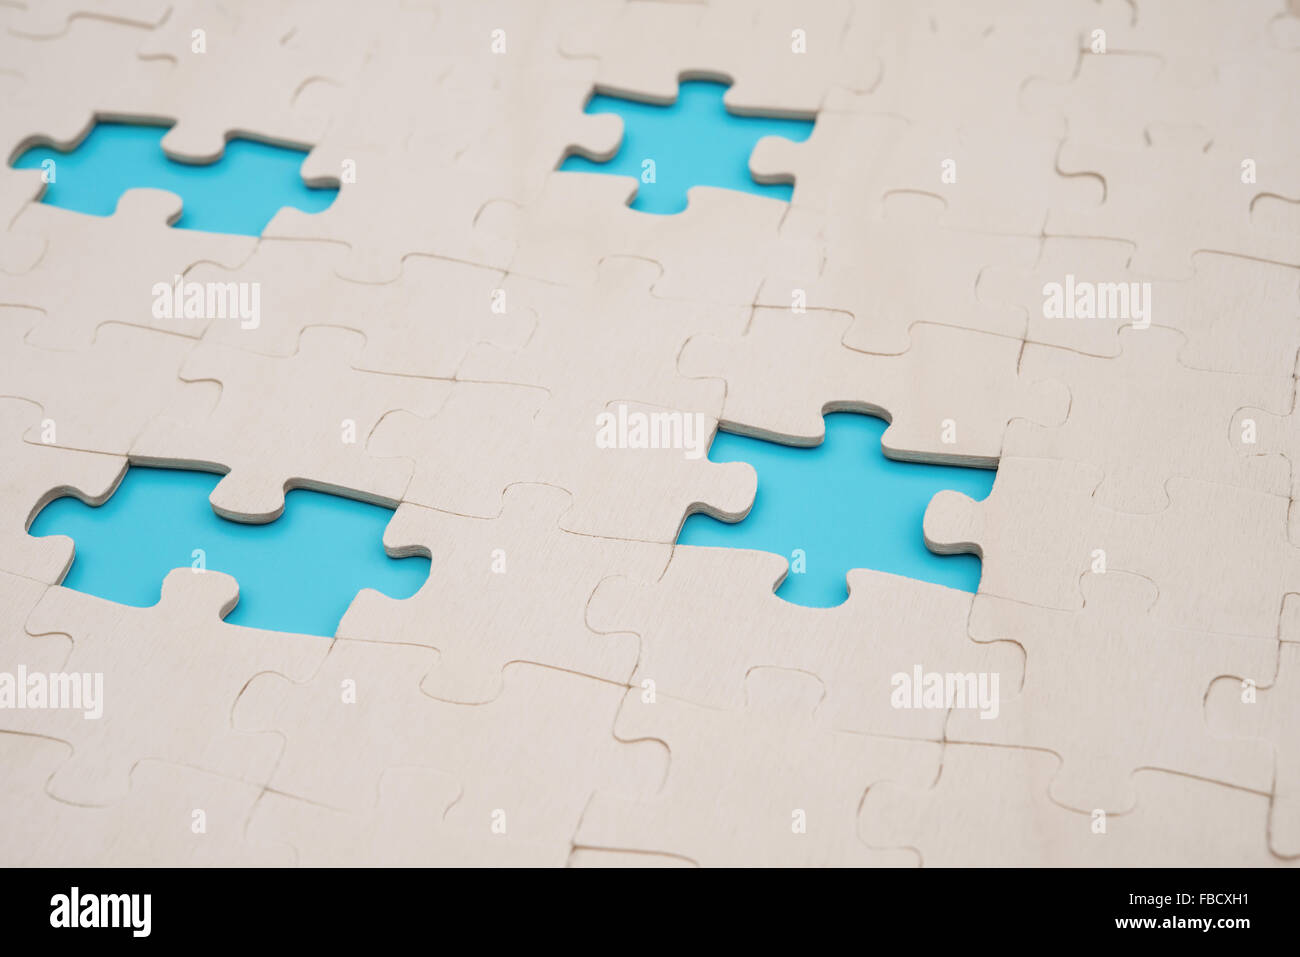 Jigsaw Puzzle With 4 Pieces Missed On Blue Background